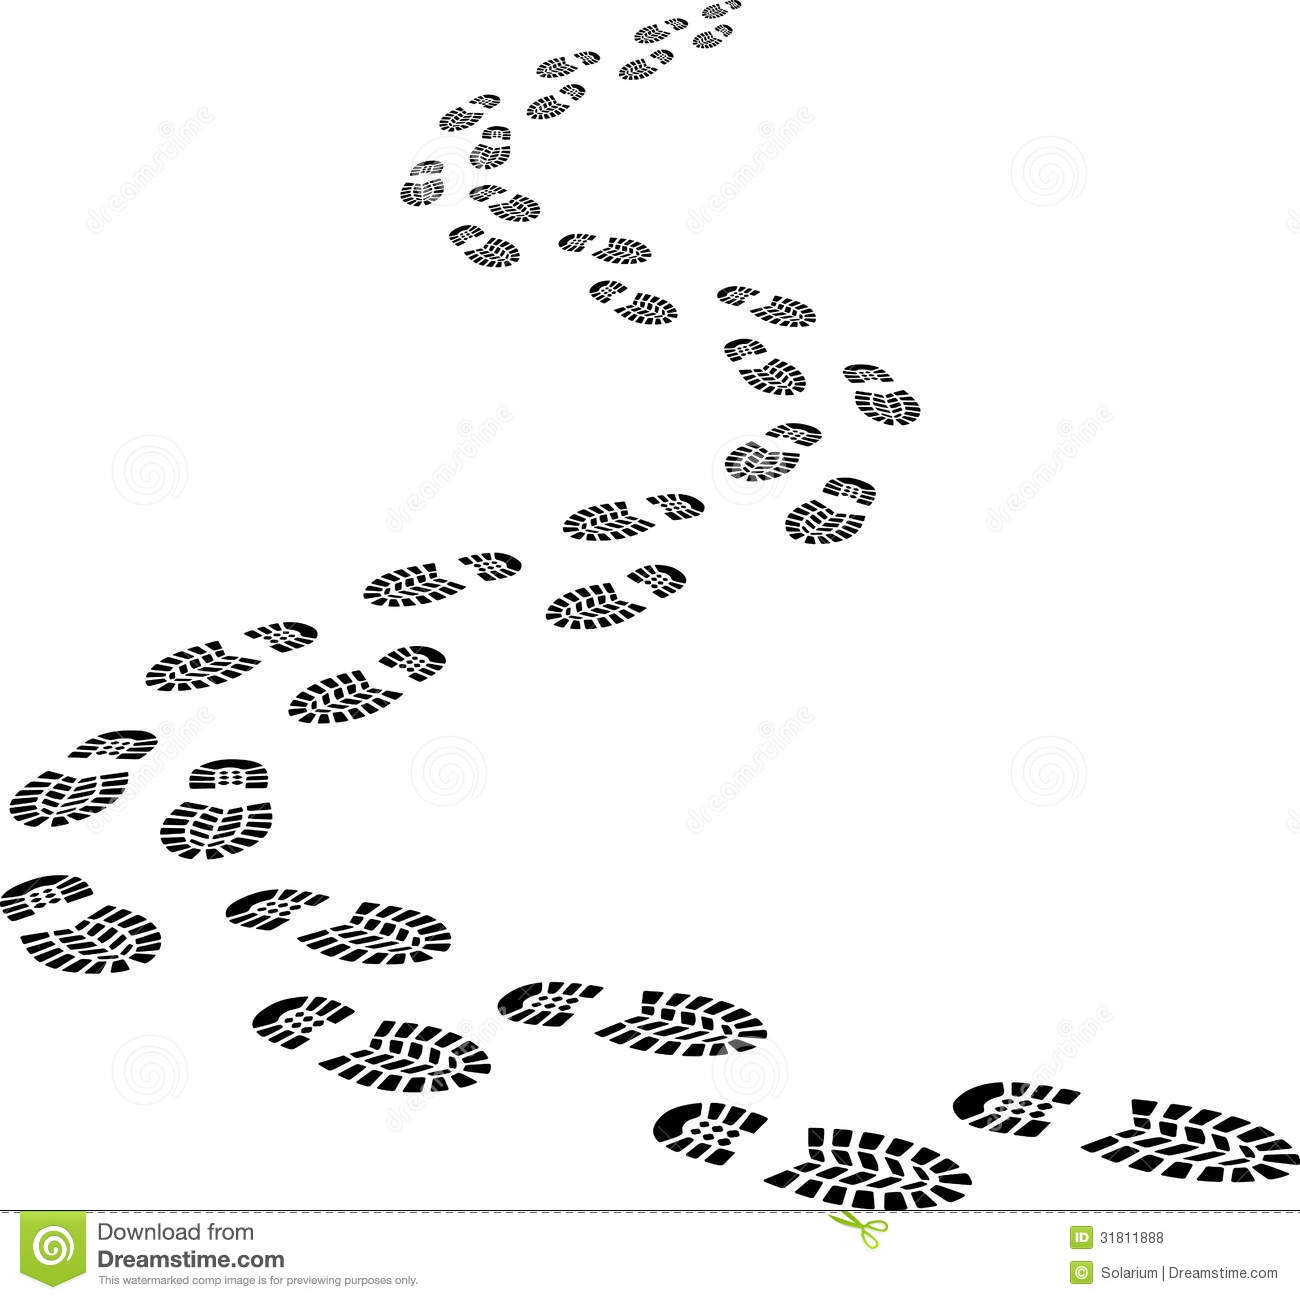 Footprints clipart. Walking free